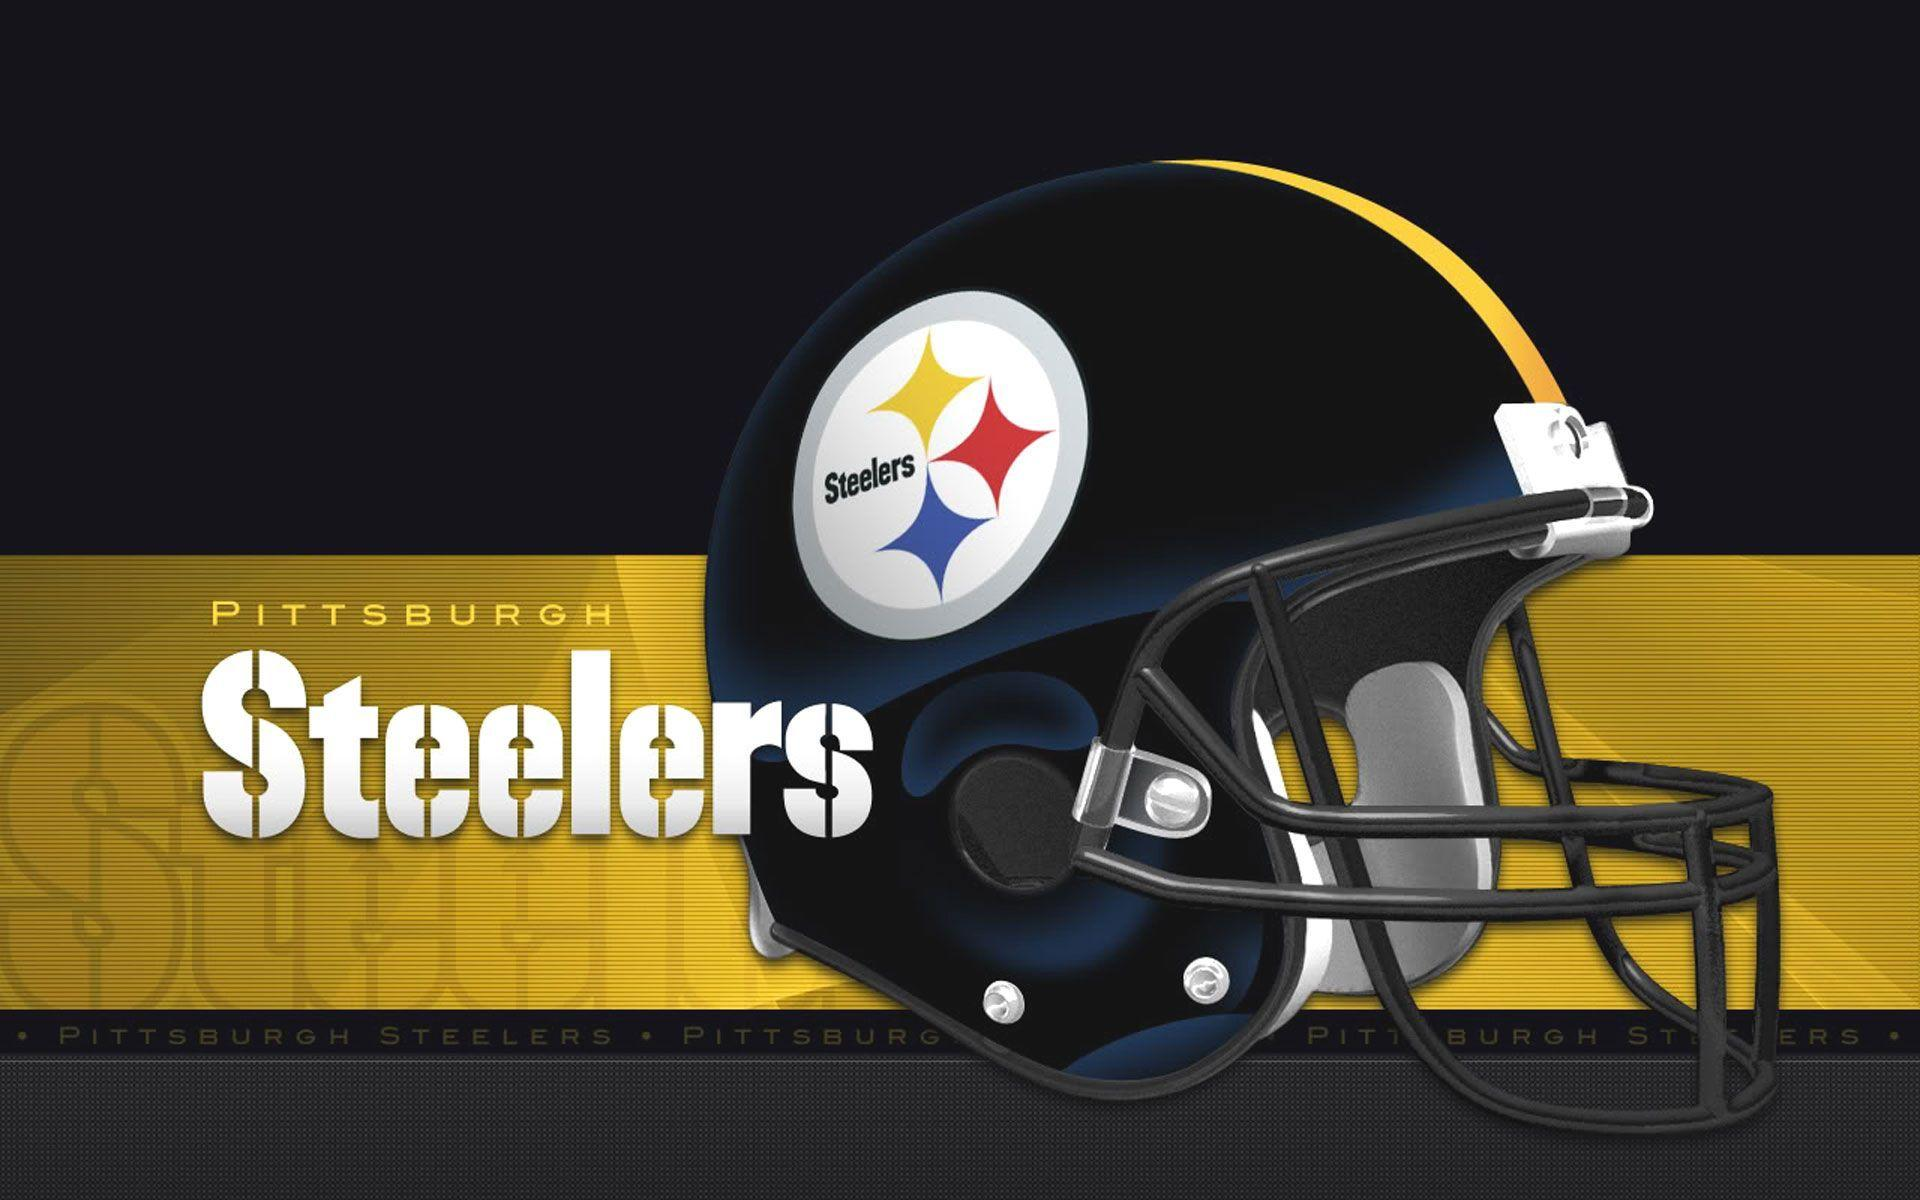 Pittsburgh Steelers Wallpapers - Full HD wallpaper search